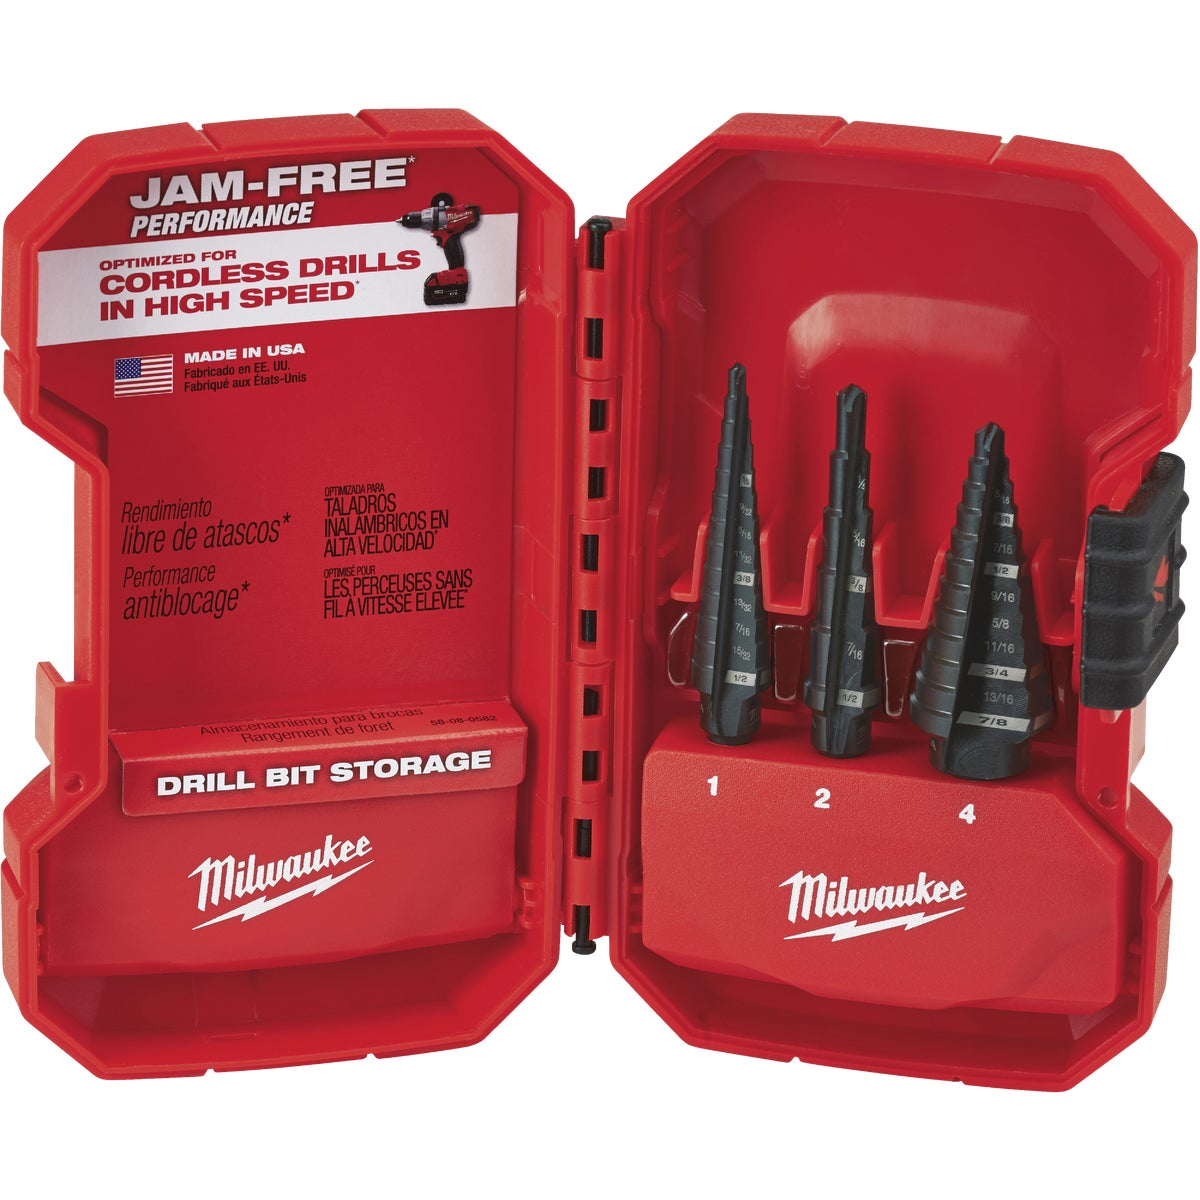 2PC STEP DRILL BIT SET - 48-89-9050 by Milwaukee Accessory